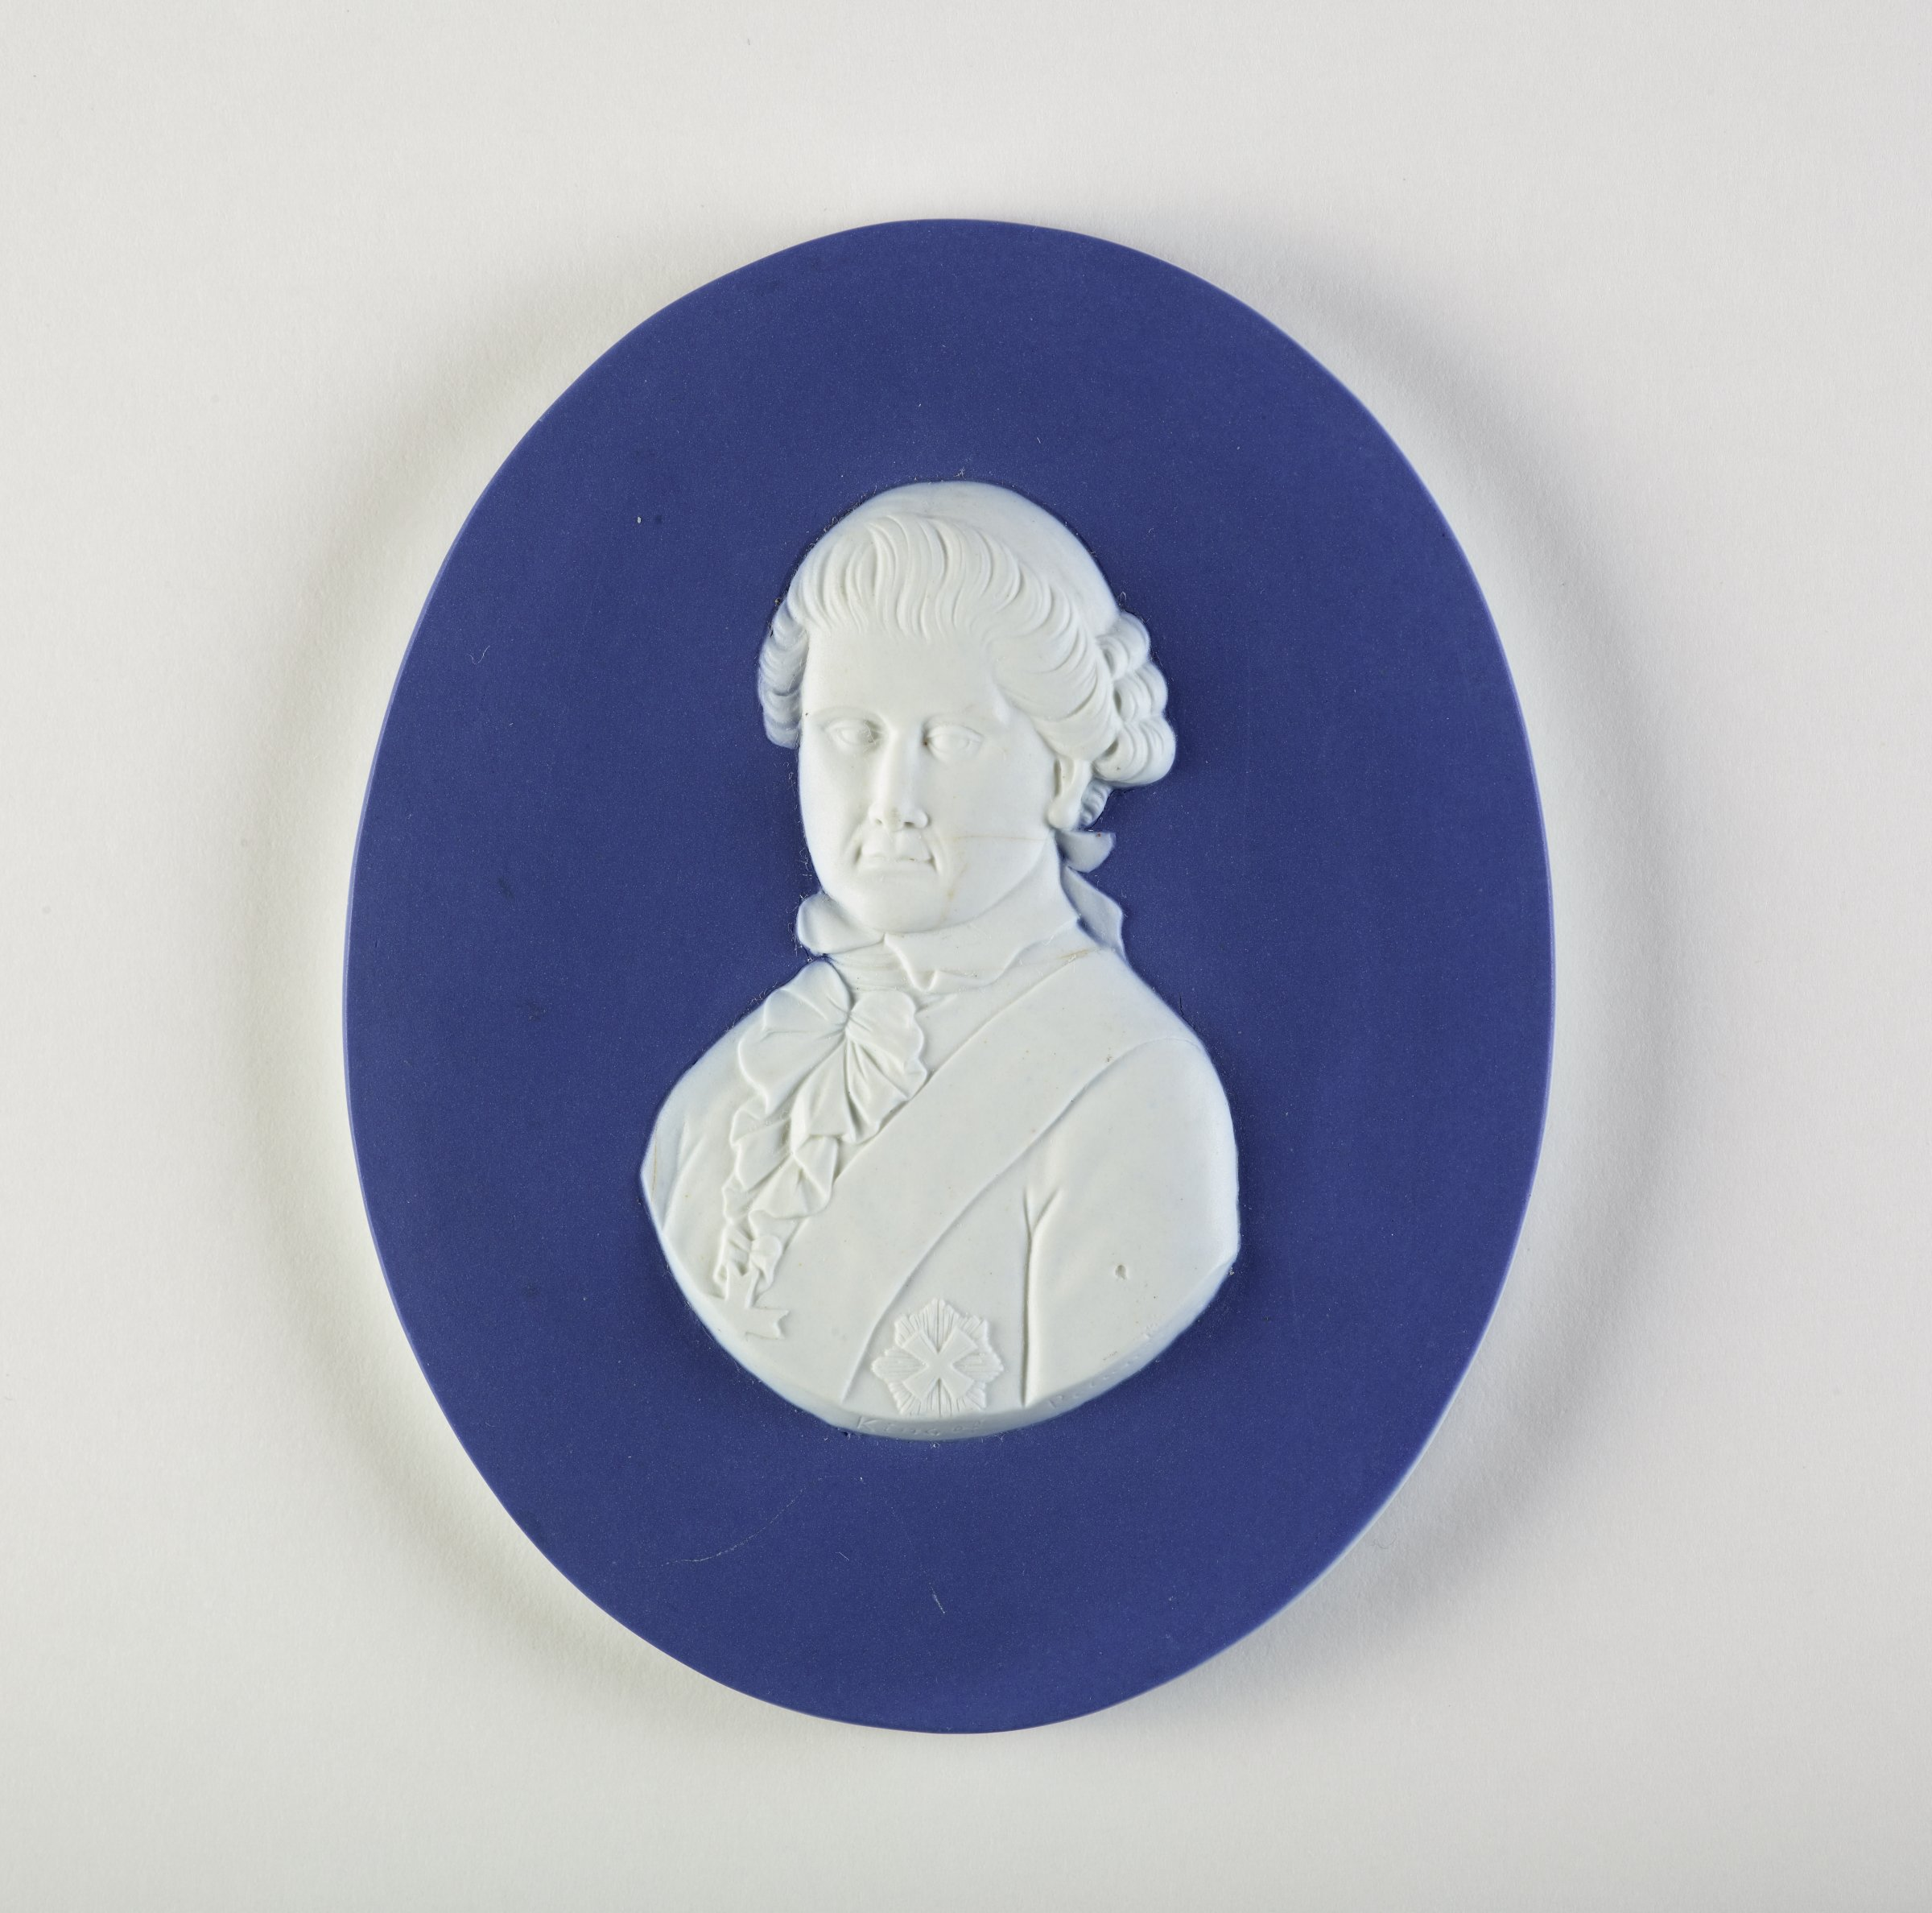 Oval portrait medallion of white jasper laminated between two surfaces of dark blue jasper dip, the portrait of the King of Portugal in civilian dress with sash to front in white relief.